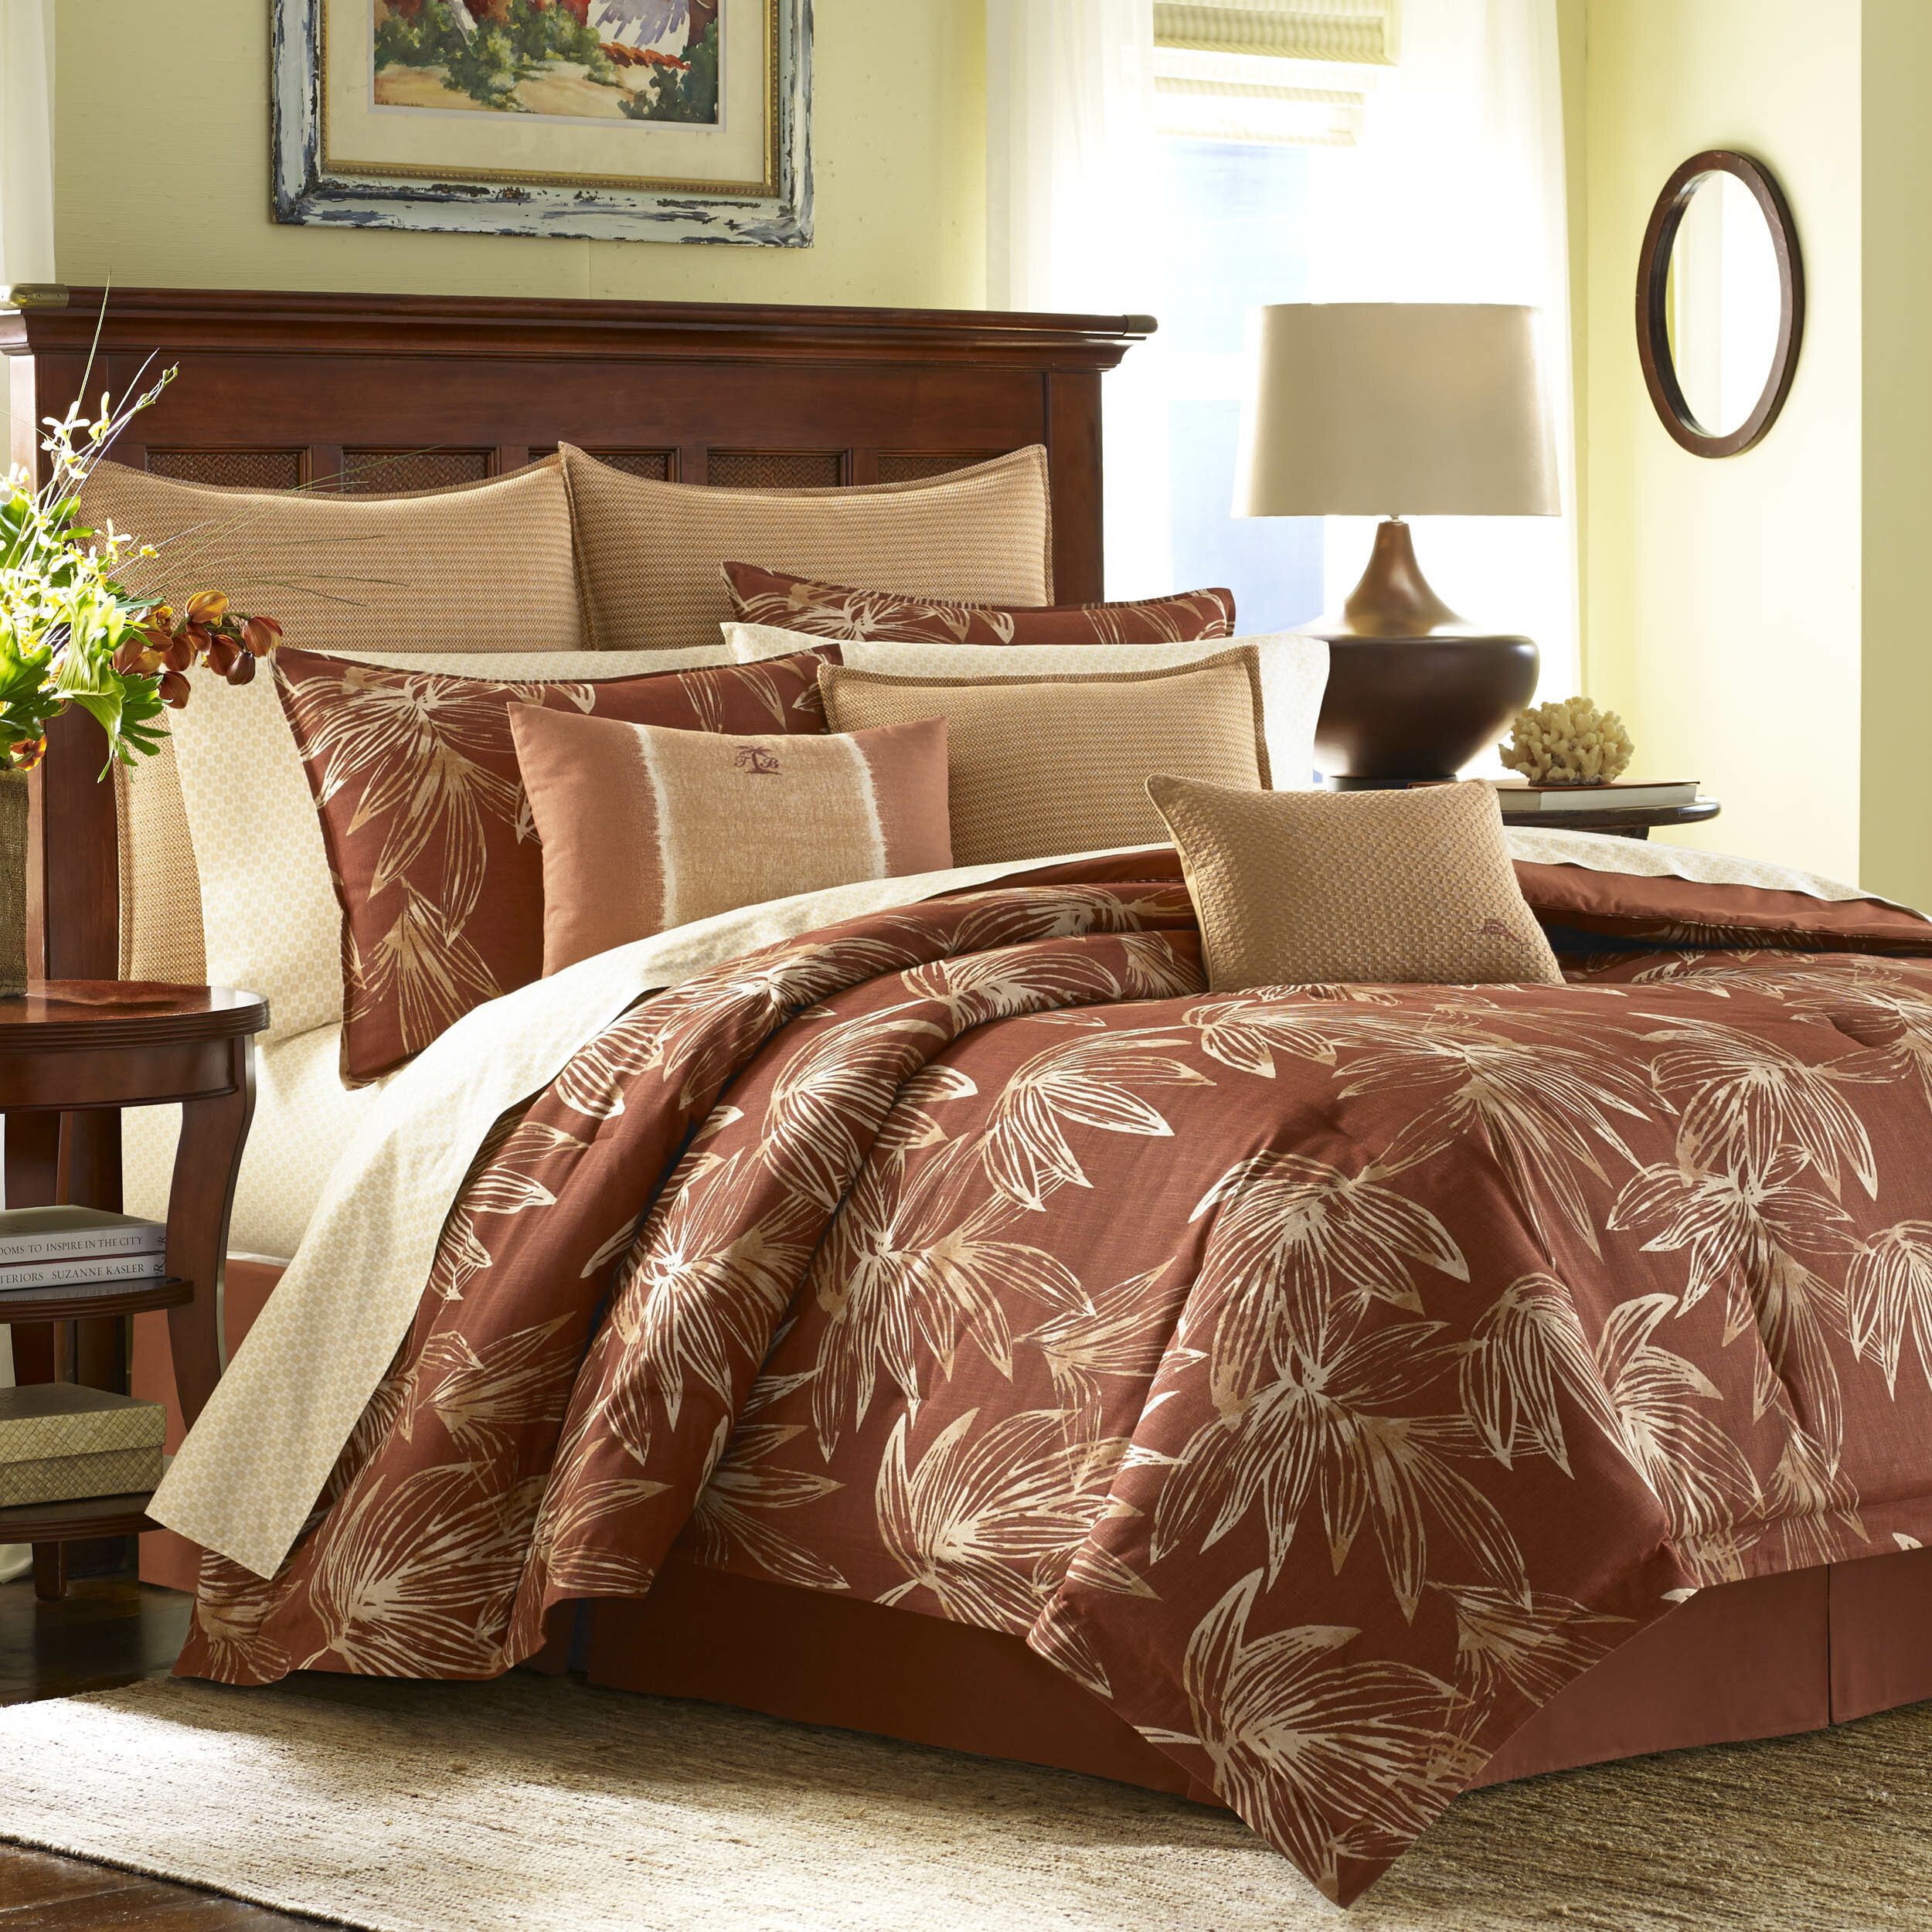 rust of ecfq sets new info black designs and set brown tan girls bedding pink comforter beautiful king